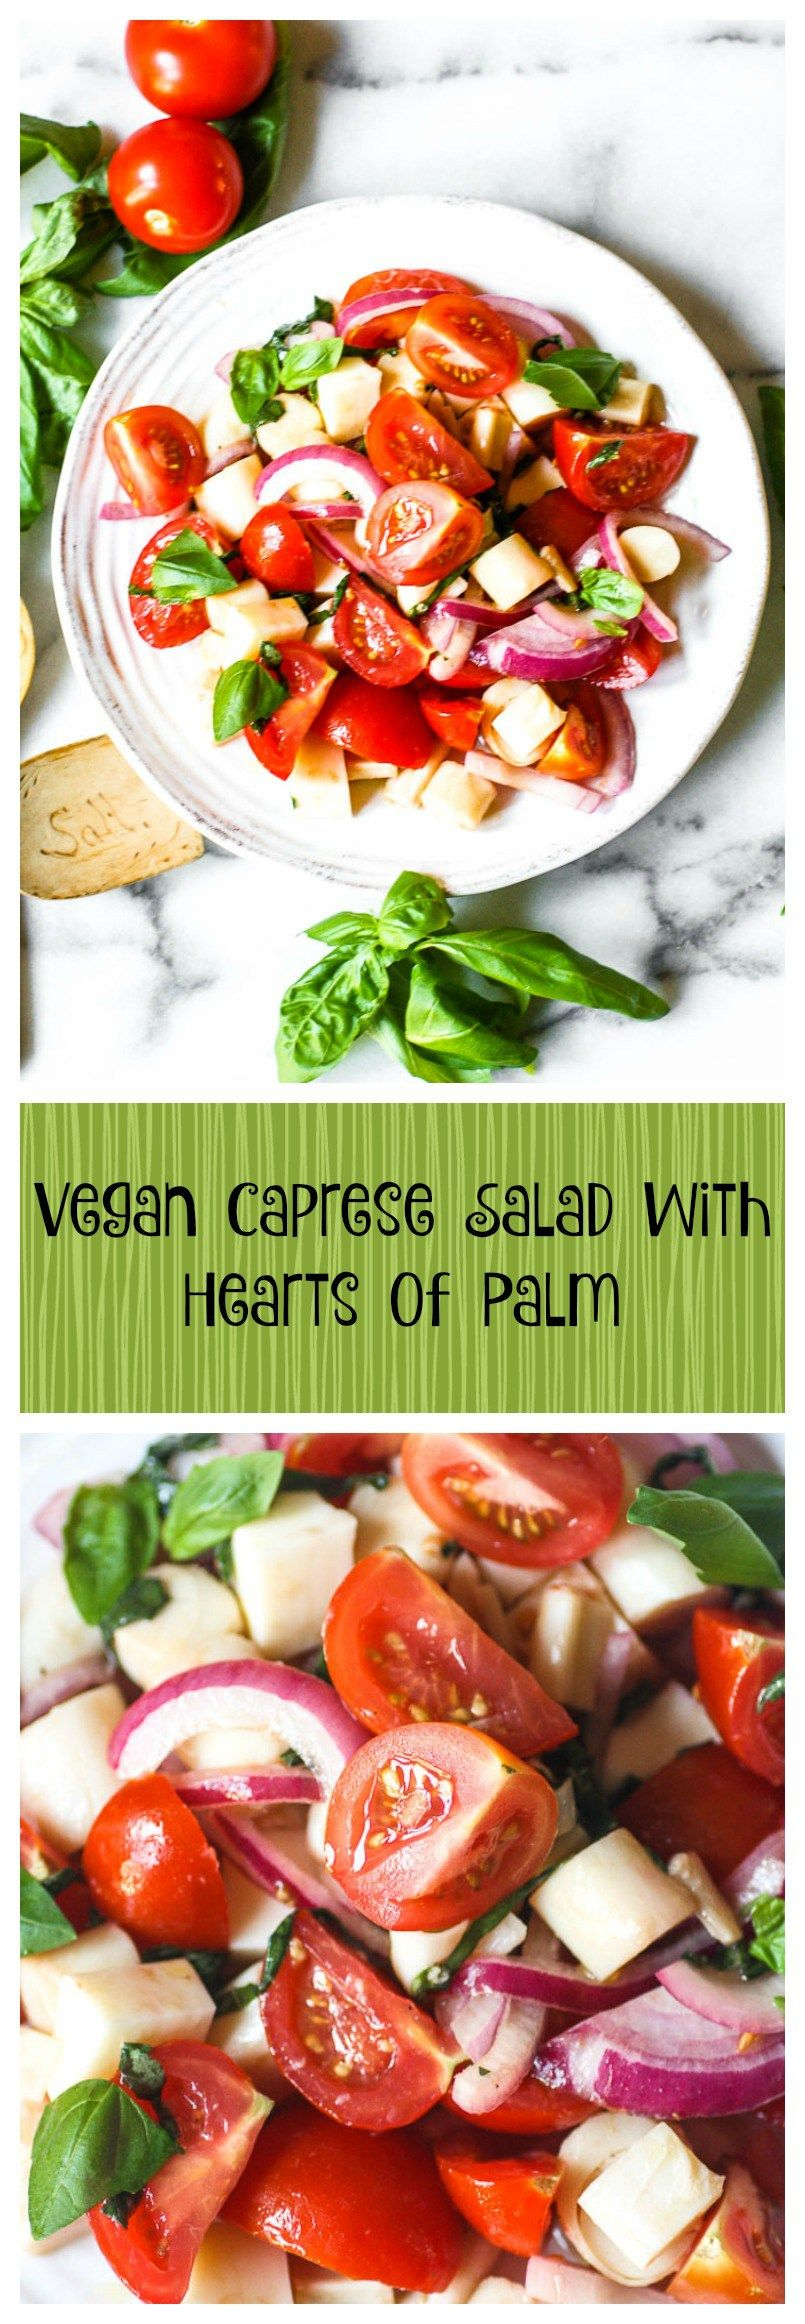 Vegan Caprese Salad With Hearts Of Palm. This healthy and simple recipe takes a traditional tomato and mozzarella salad to new heights!